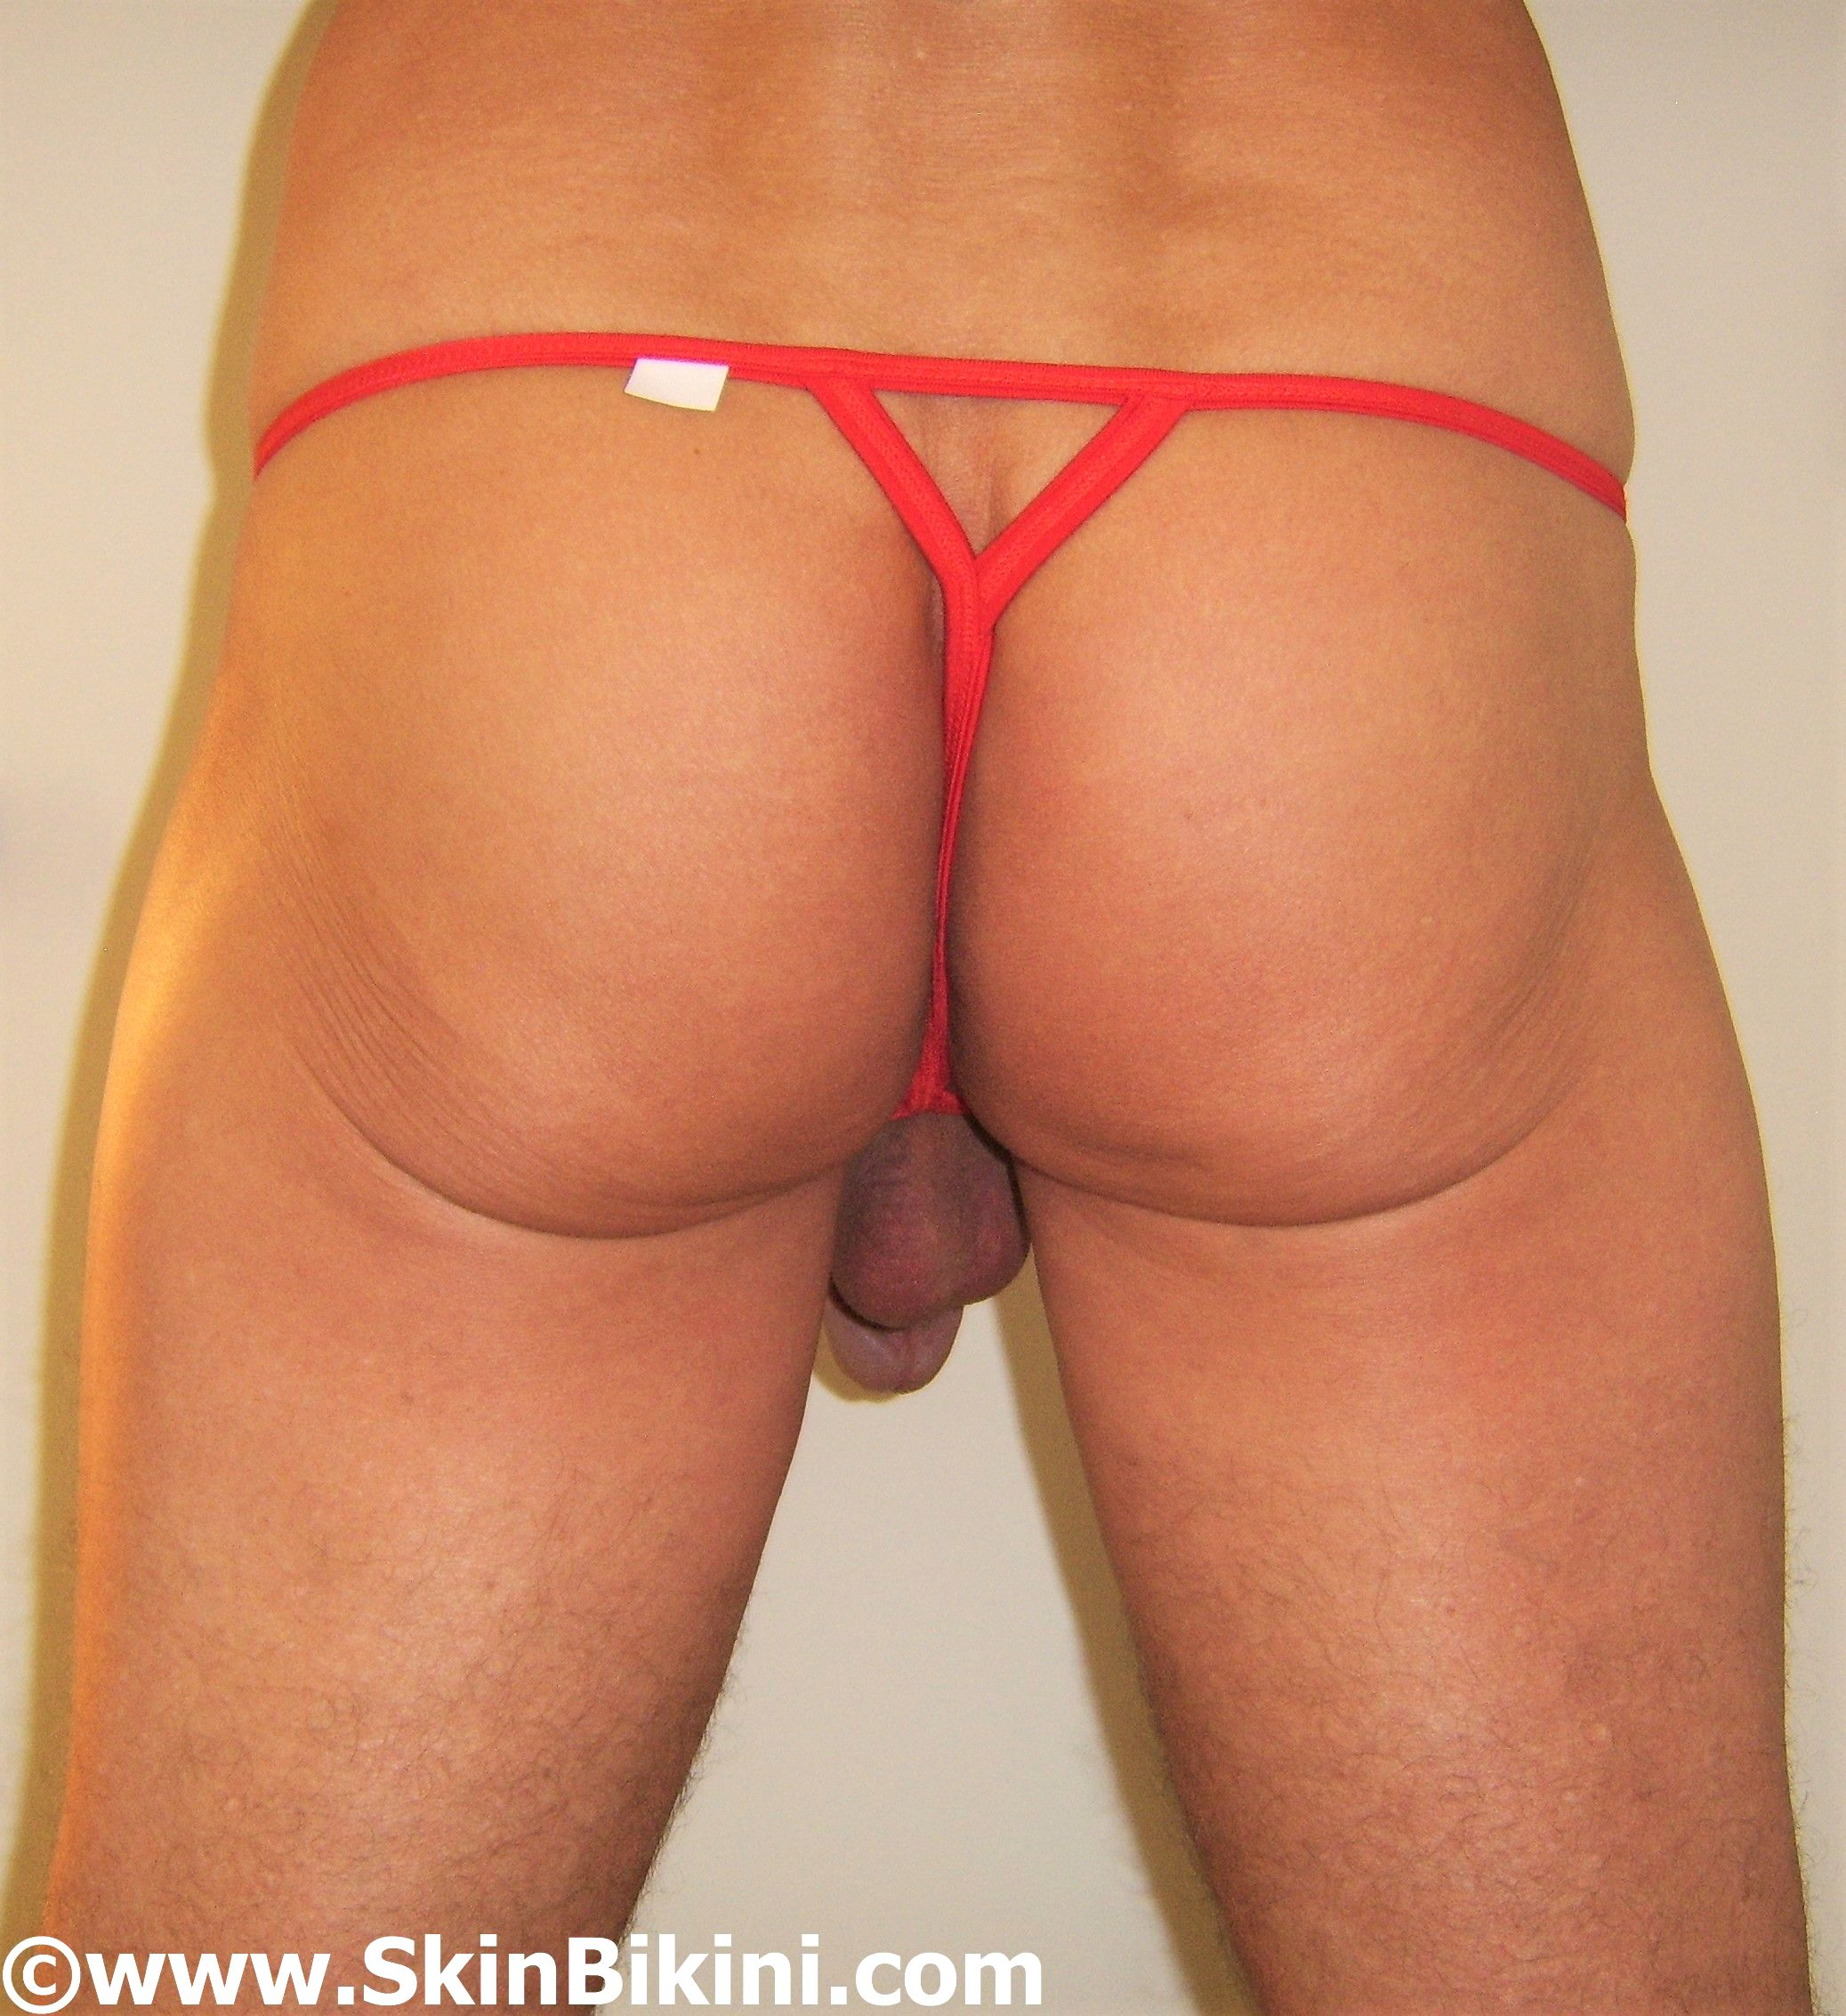 men's extreme thong bikini - crotchless - let me out